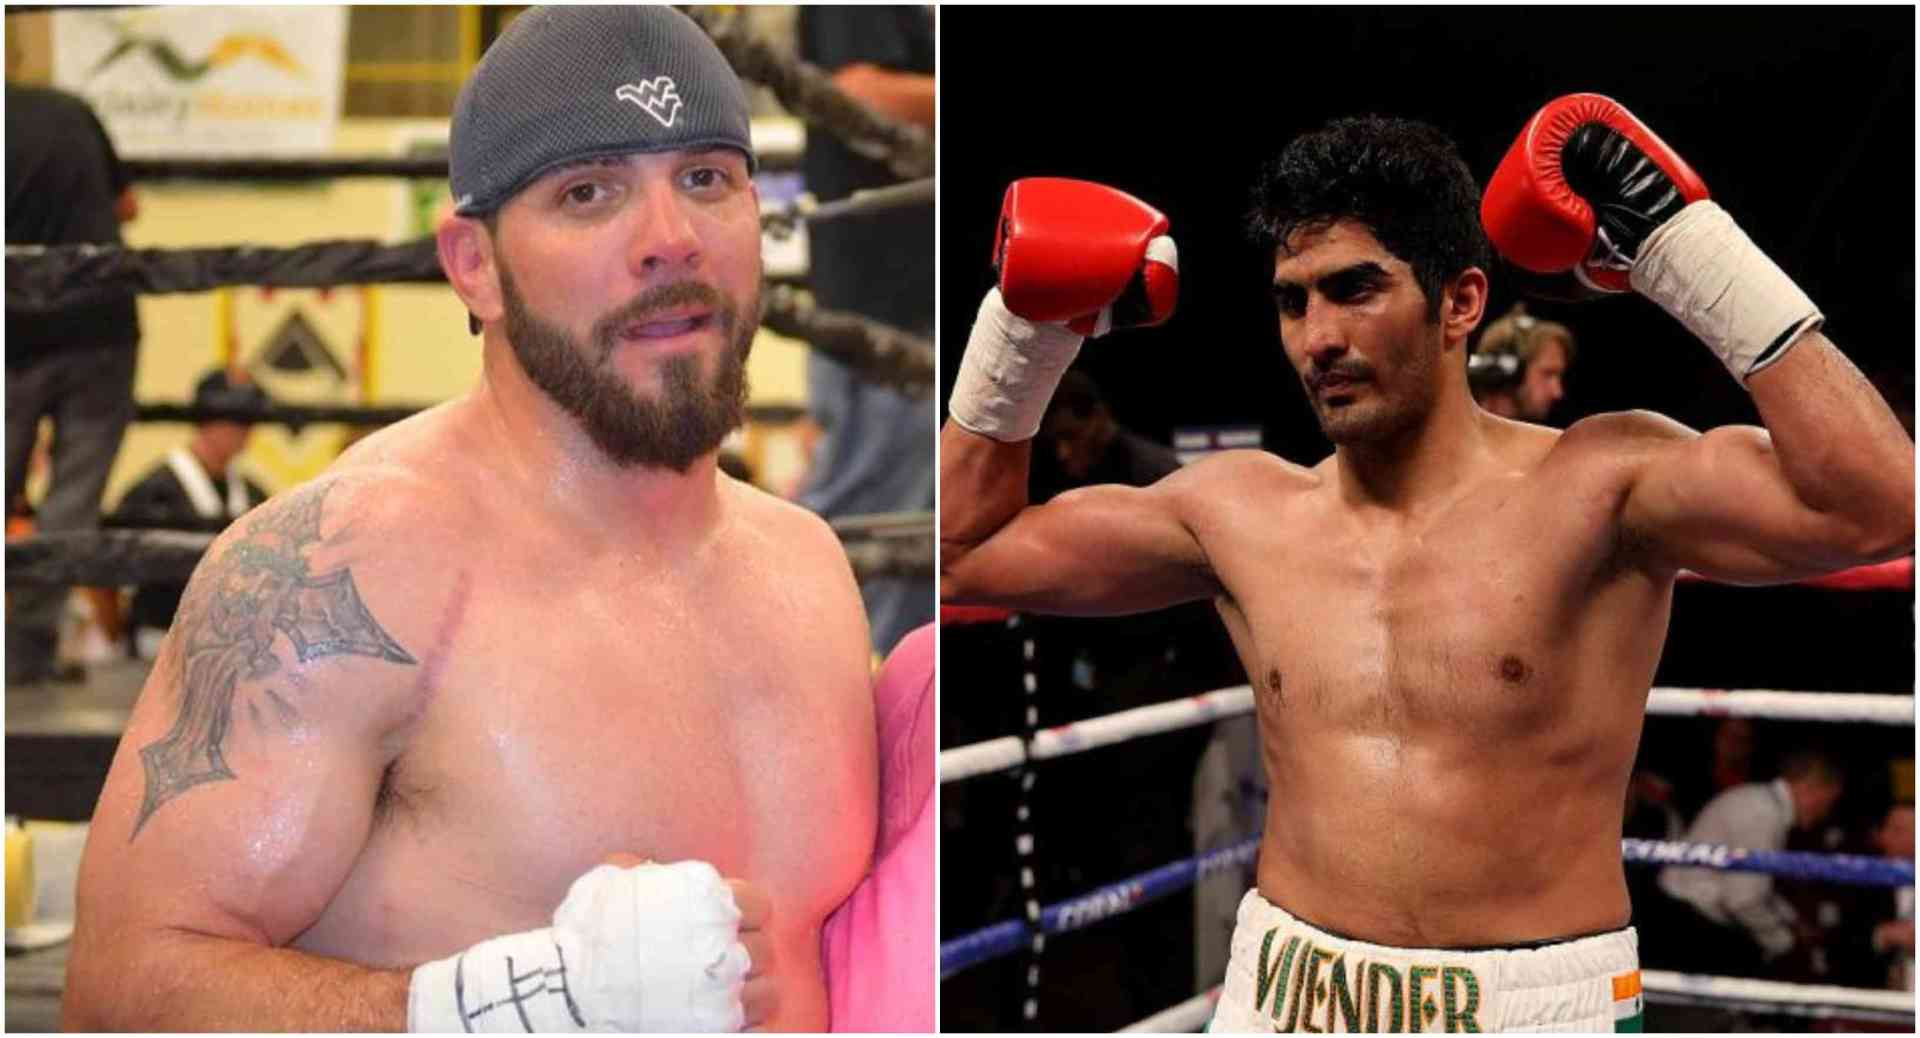 Vijender Singh to face Mike Snider on July 13 in New Jersey for his US debut - Vijender